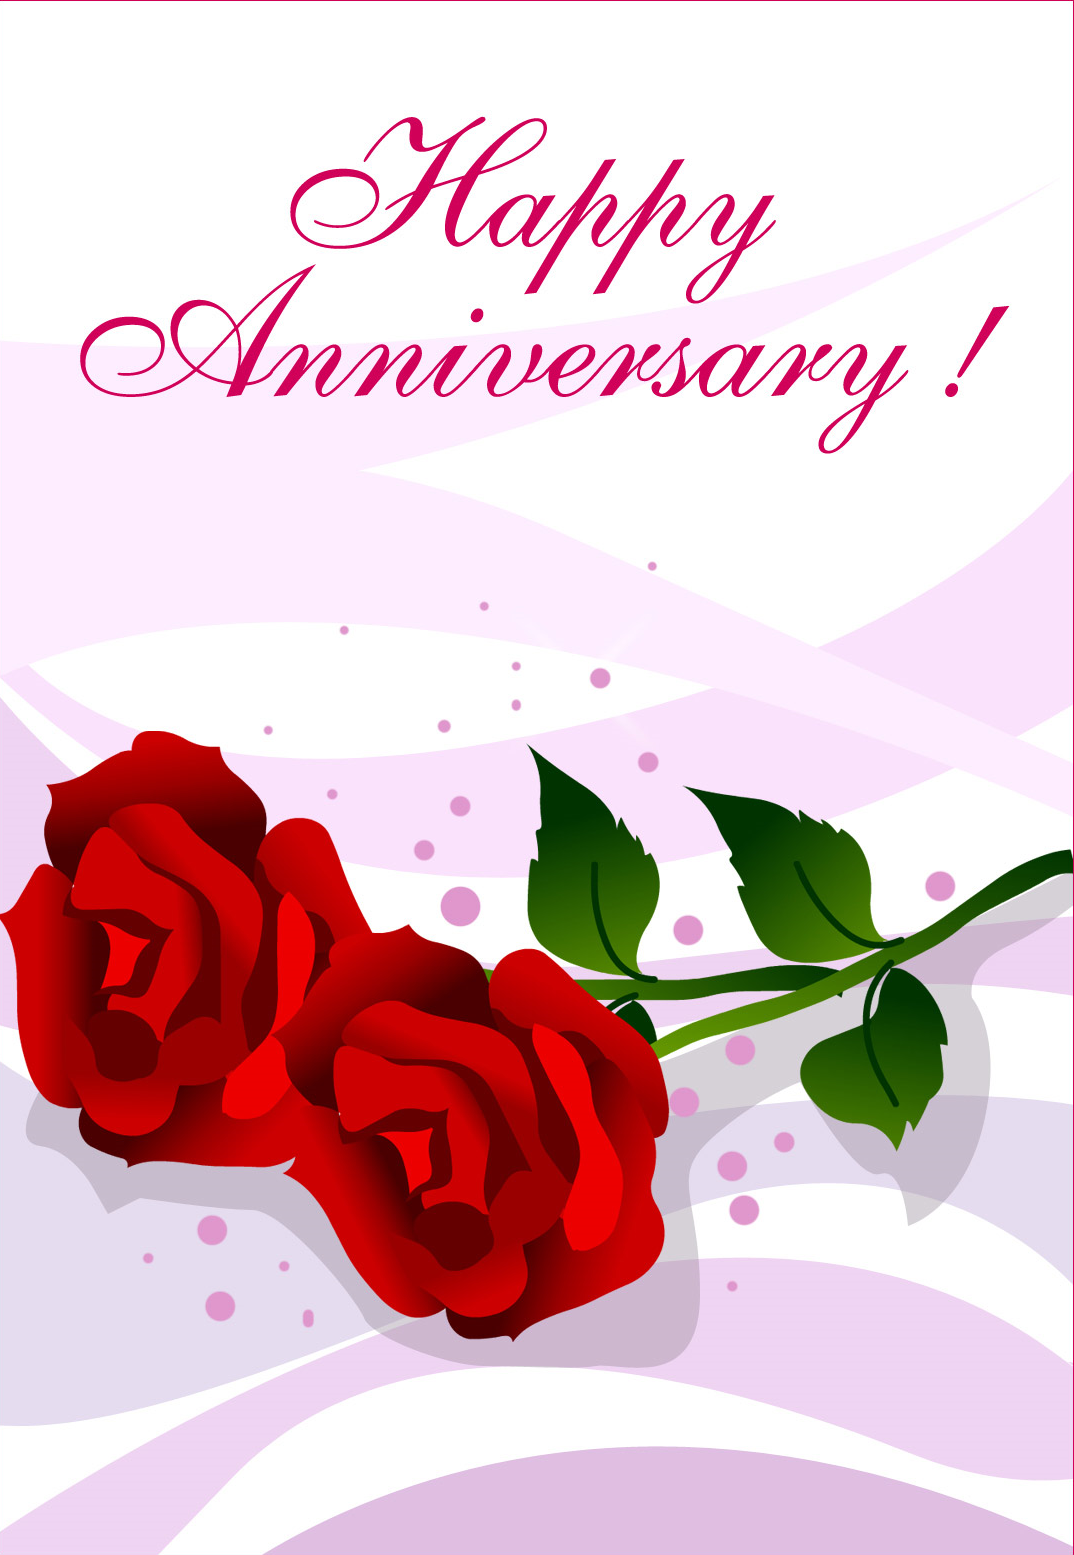 Pin By Jaberta Cochran On Sentiments Happy Wedding Anniversary Cards Happy Anniversary Cards Marriage Anniversary Cards